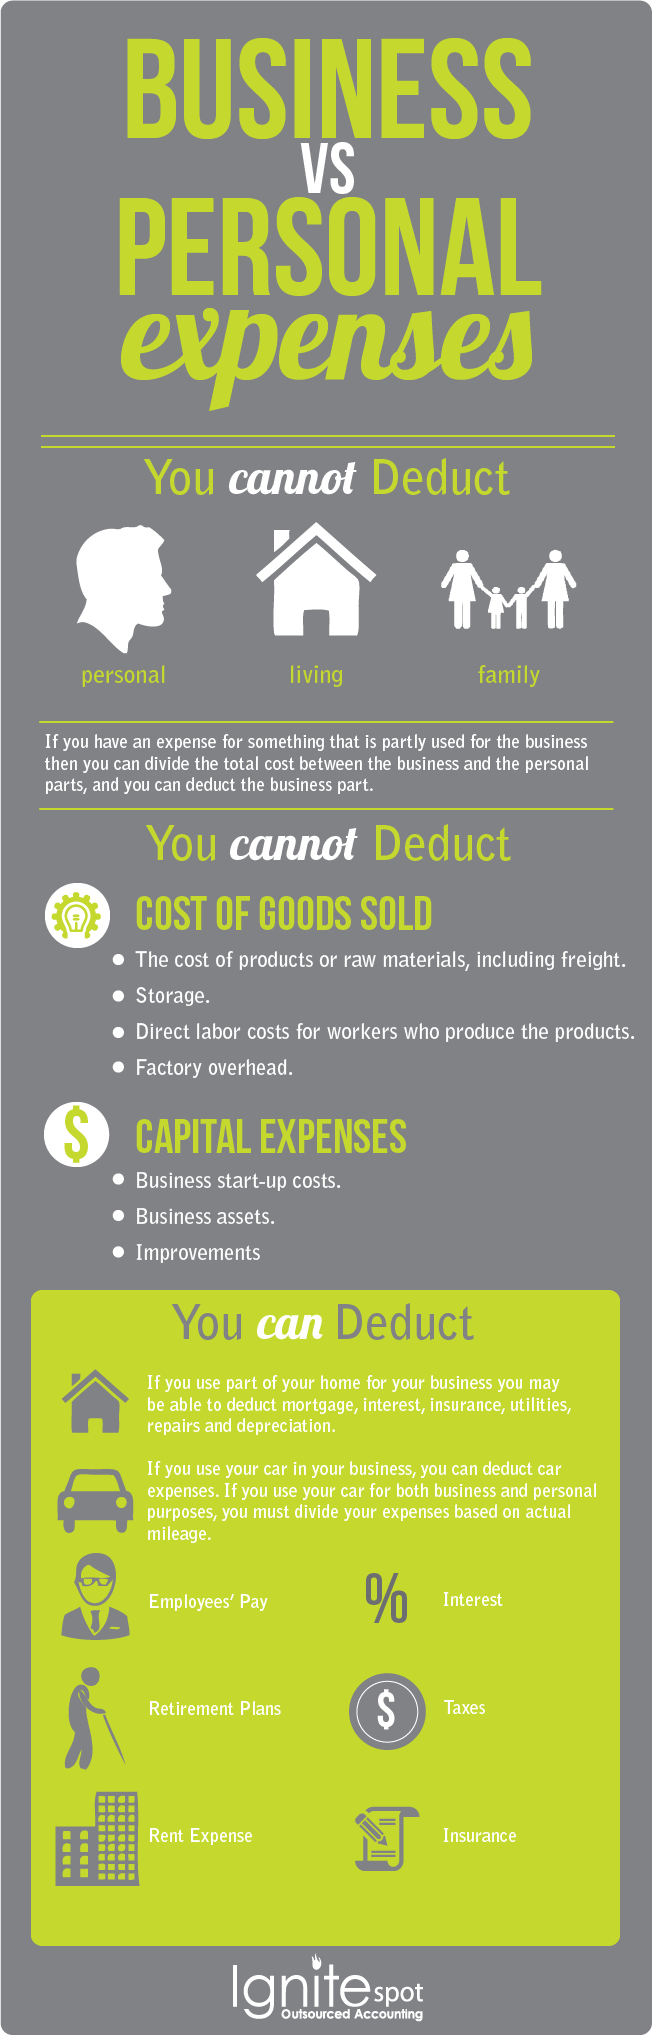 business_personal_infographic